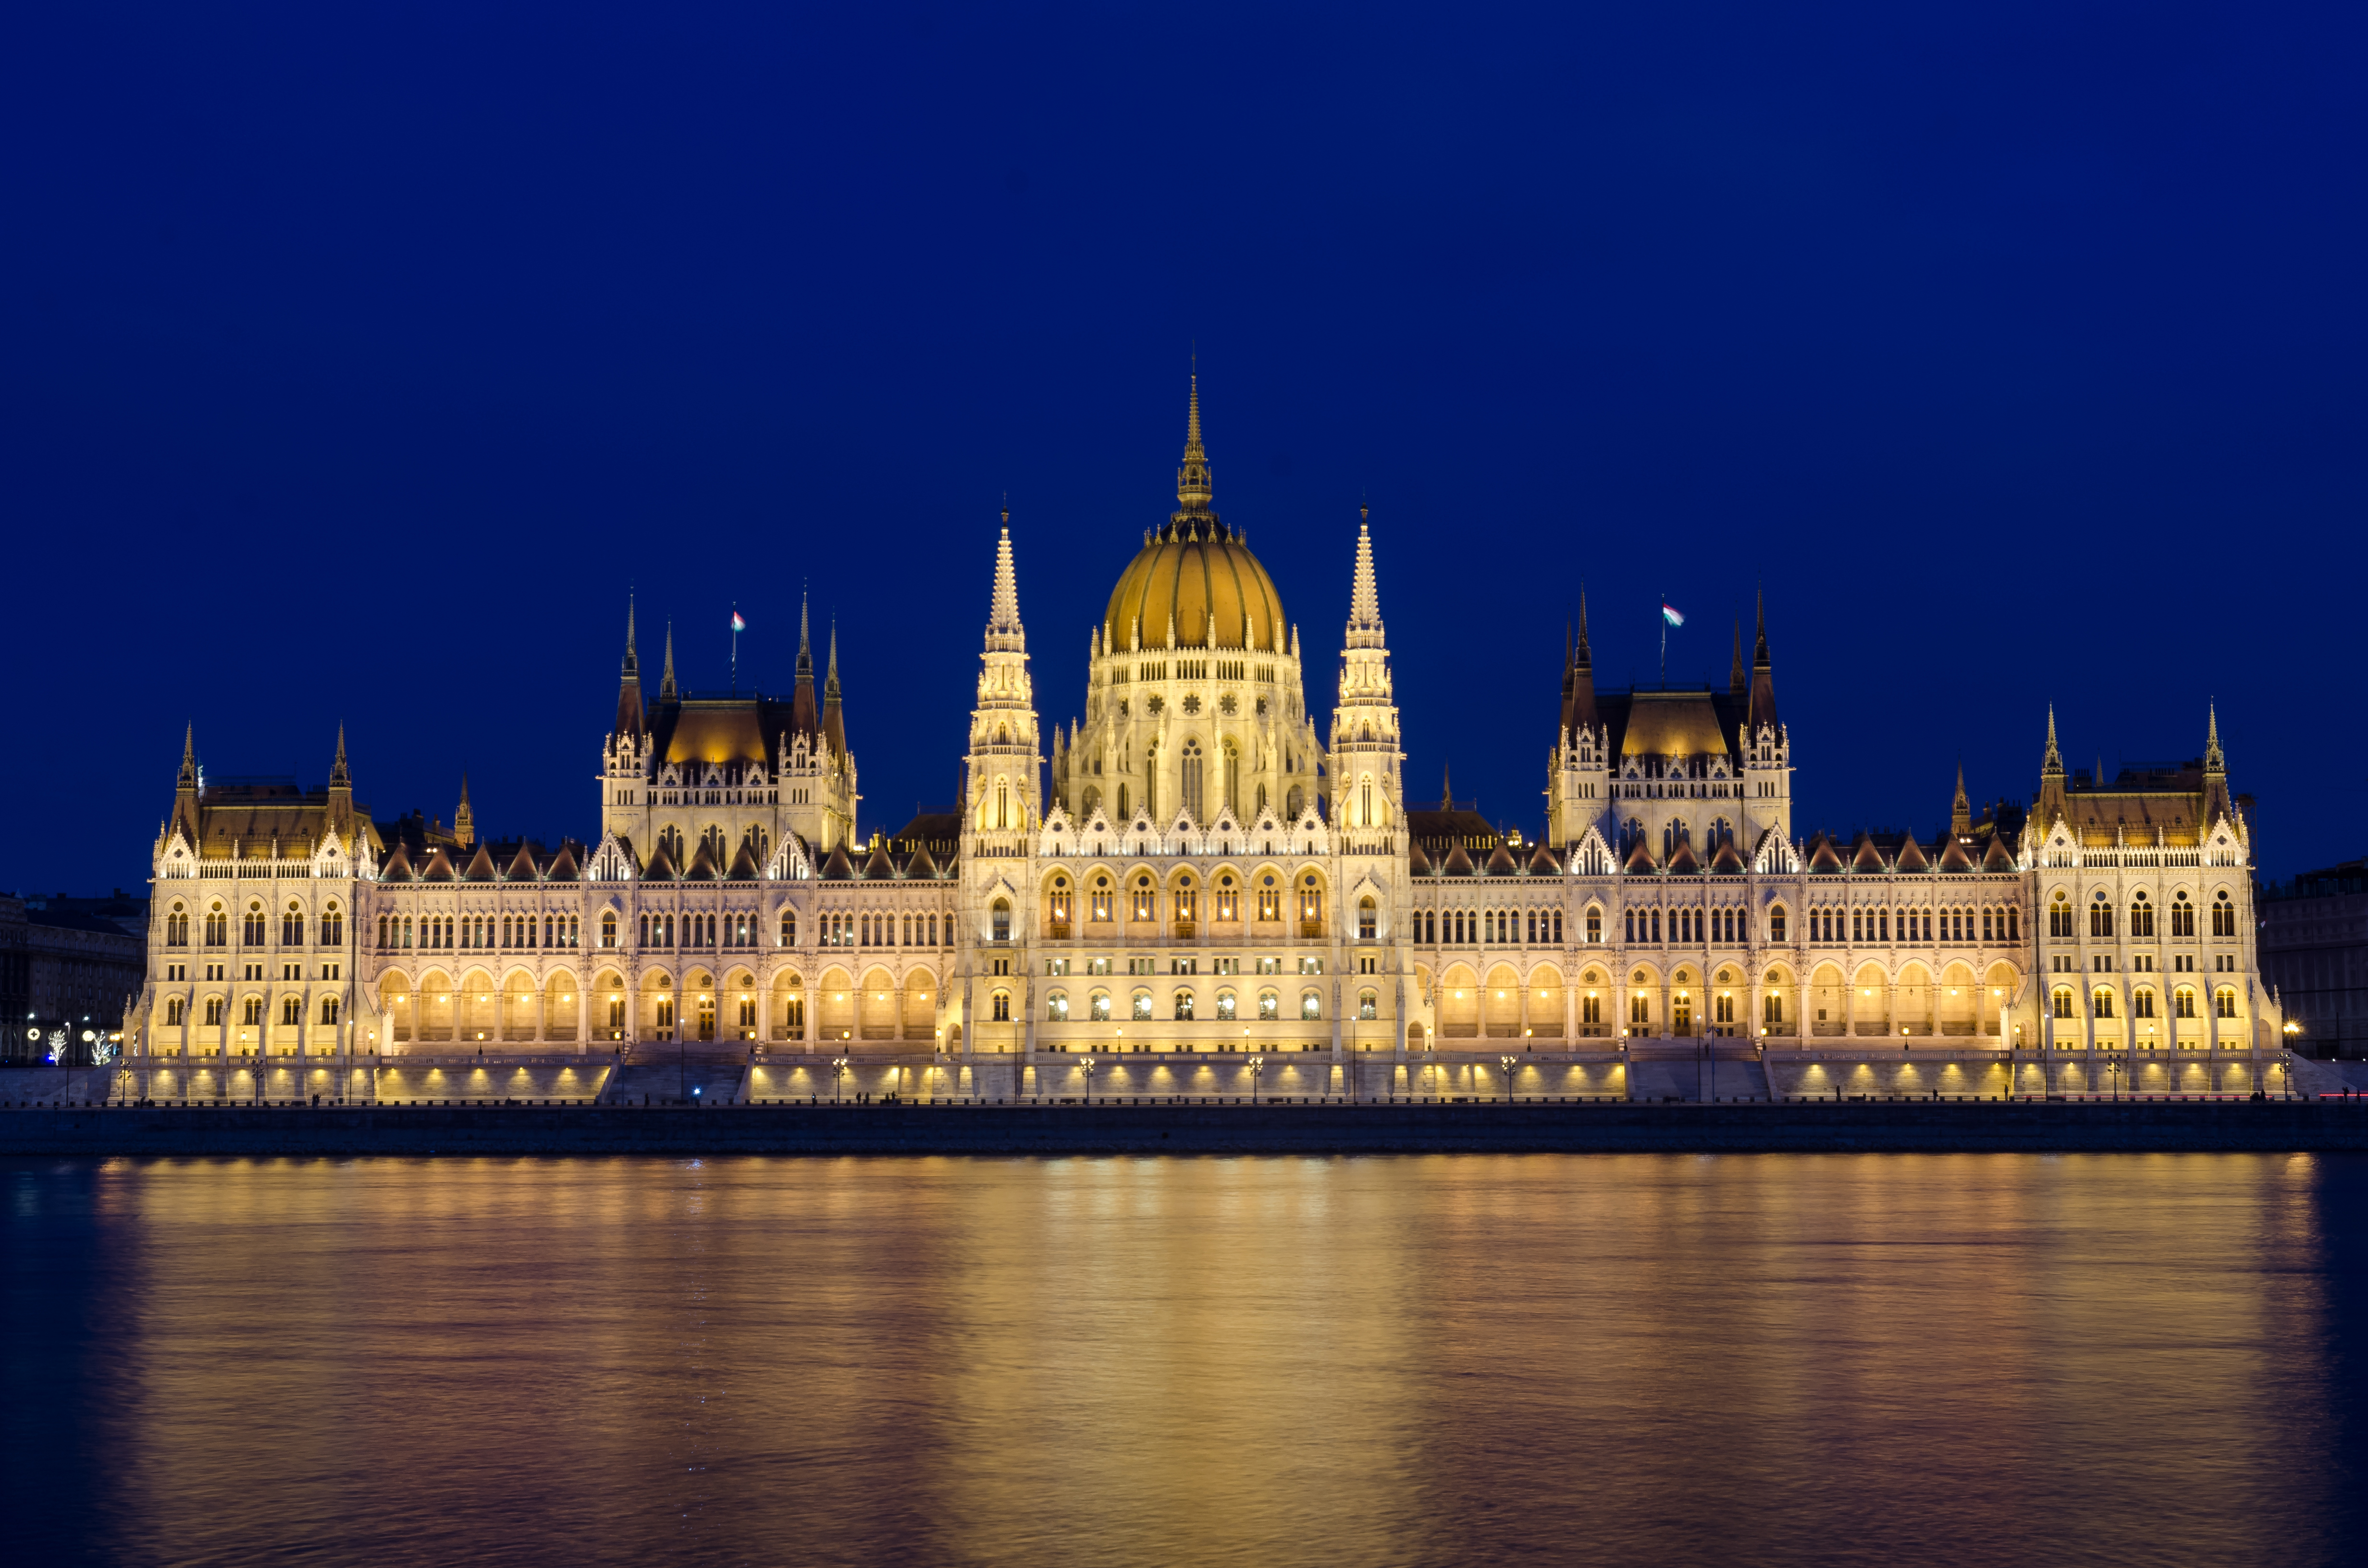 Illuminated Budapest hungarian Parliament at night reflected in the Danube river.